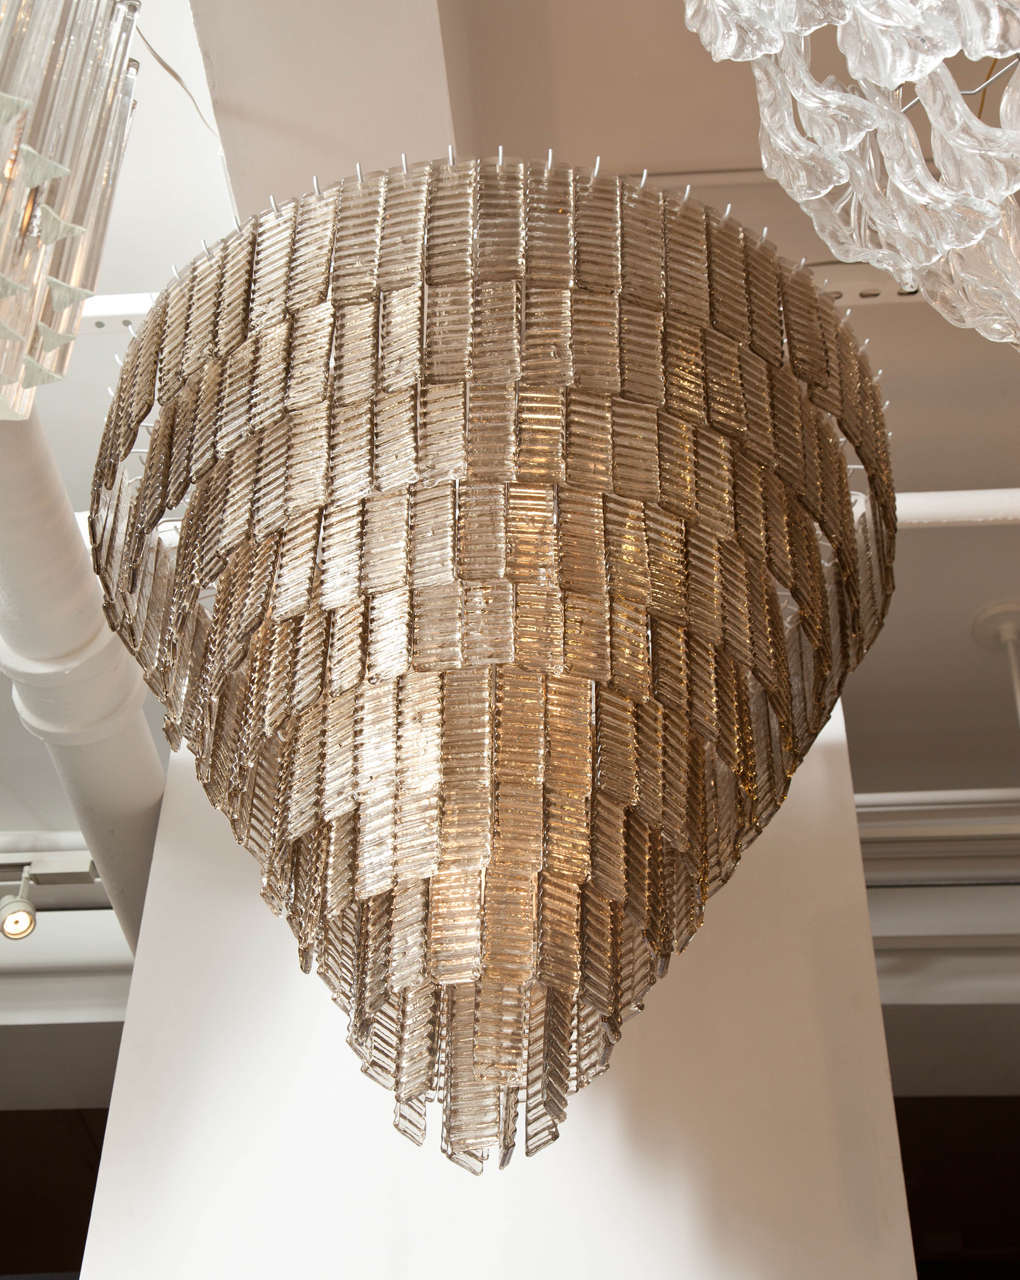 This chandelier (35.5